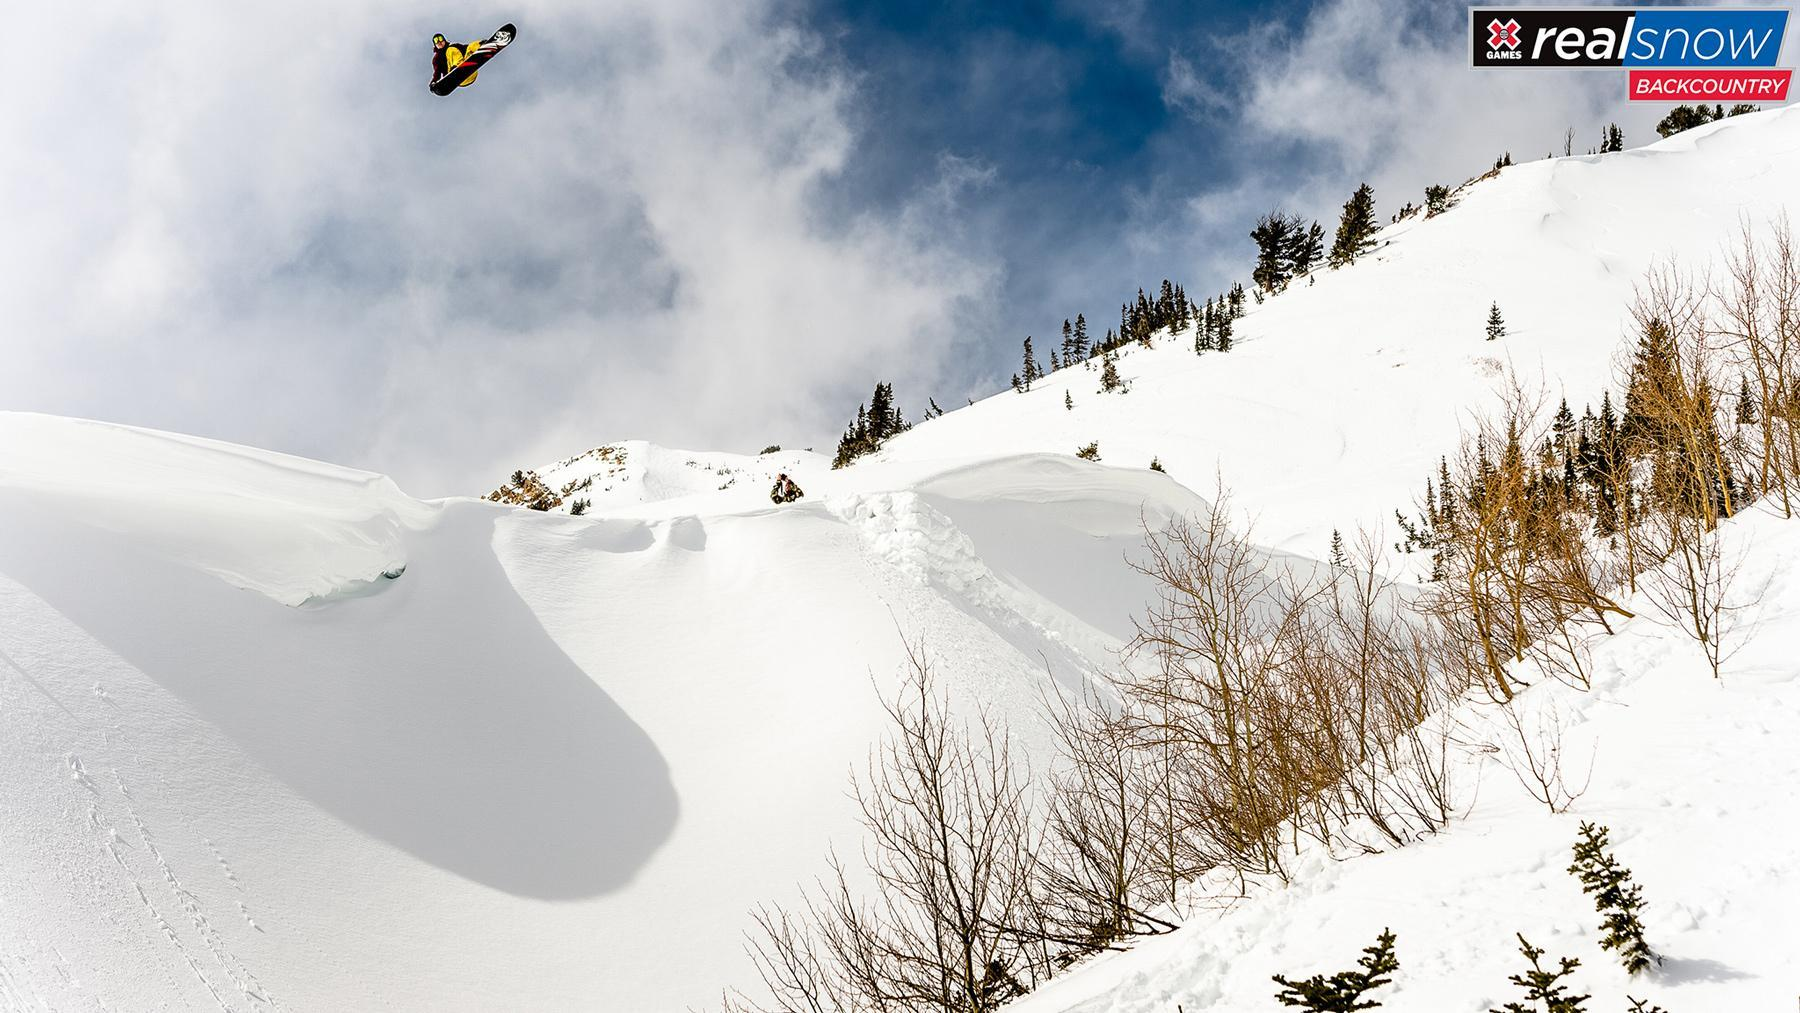 Real Snow Backcountry 2016 Is On